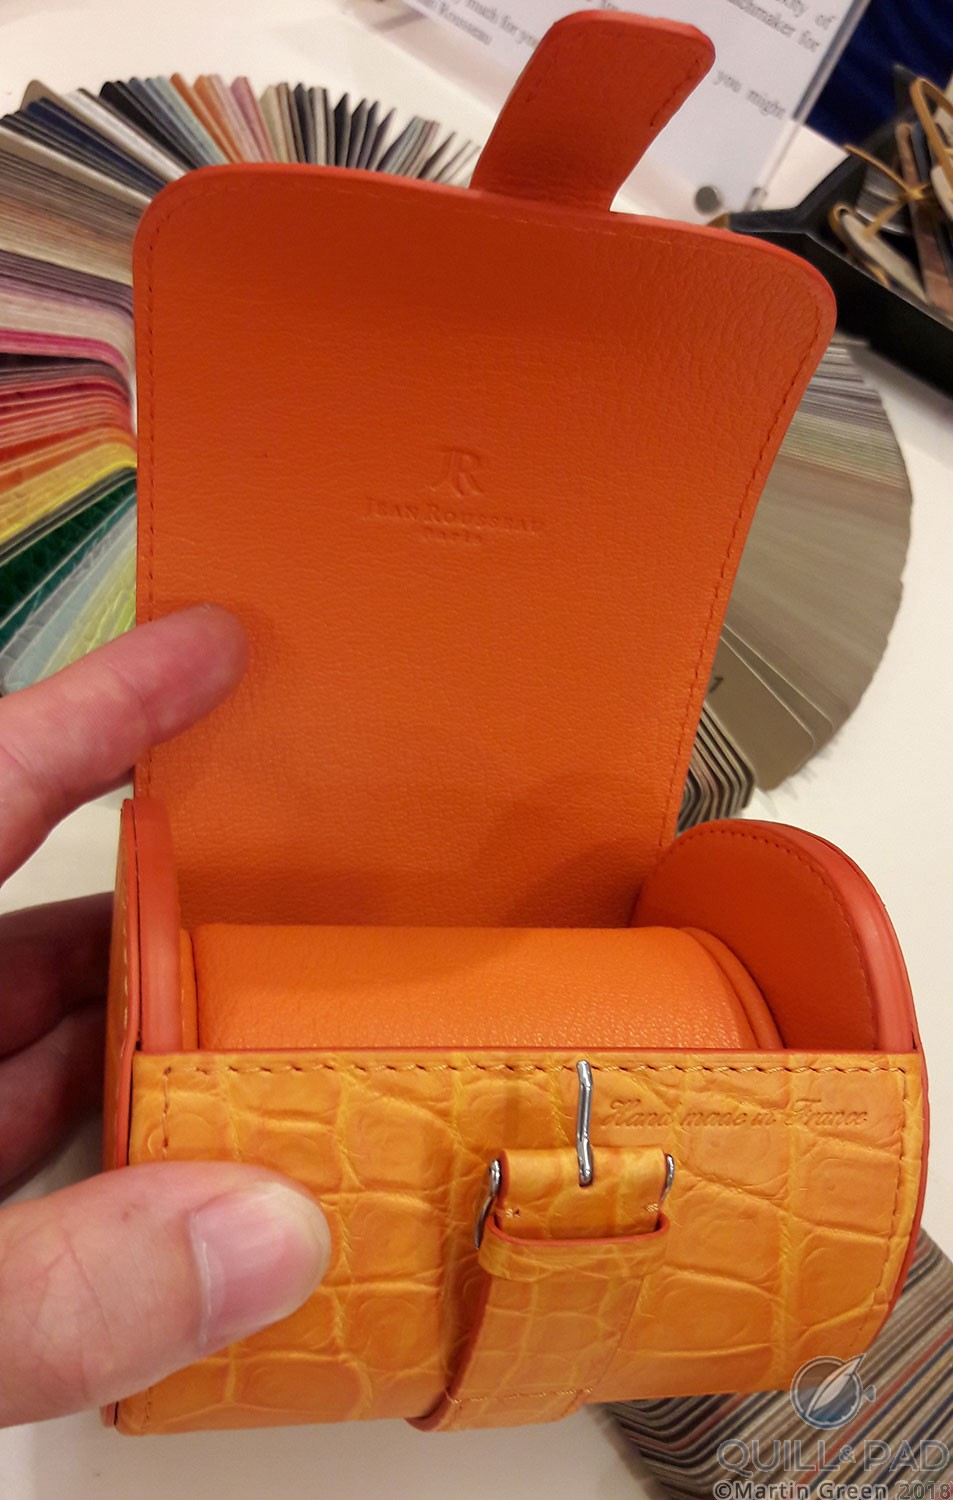 Leather watch case at Jean Rousseau, London